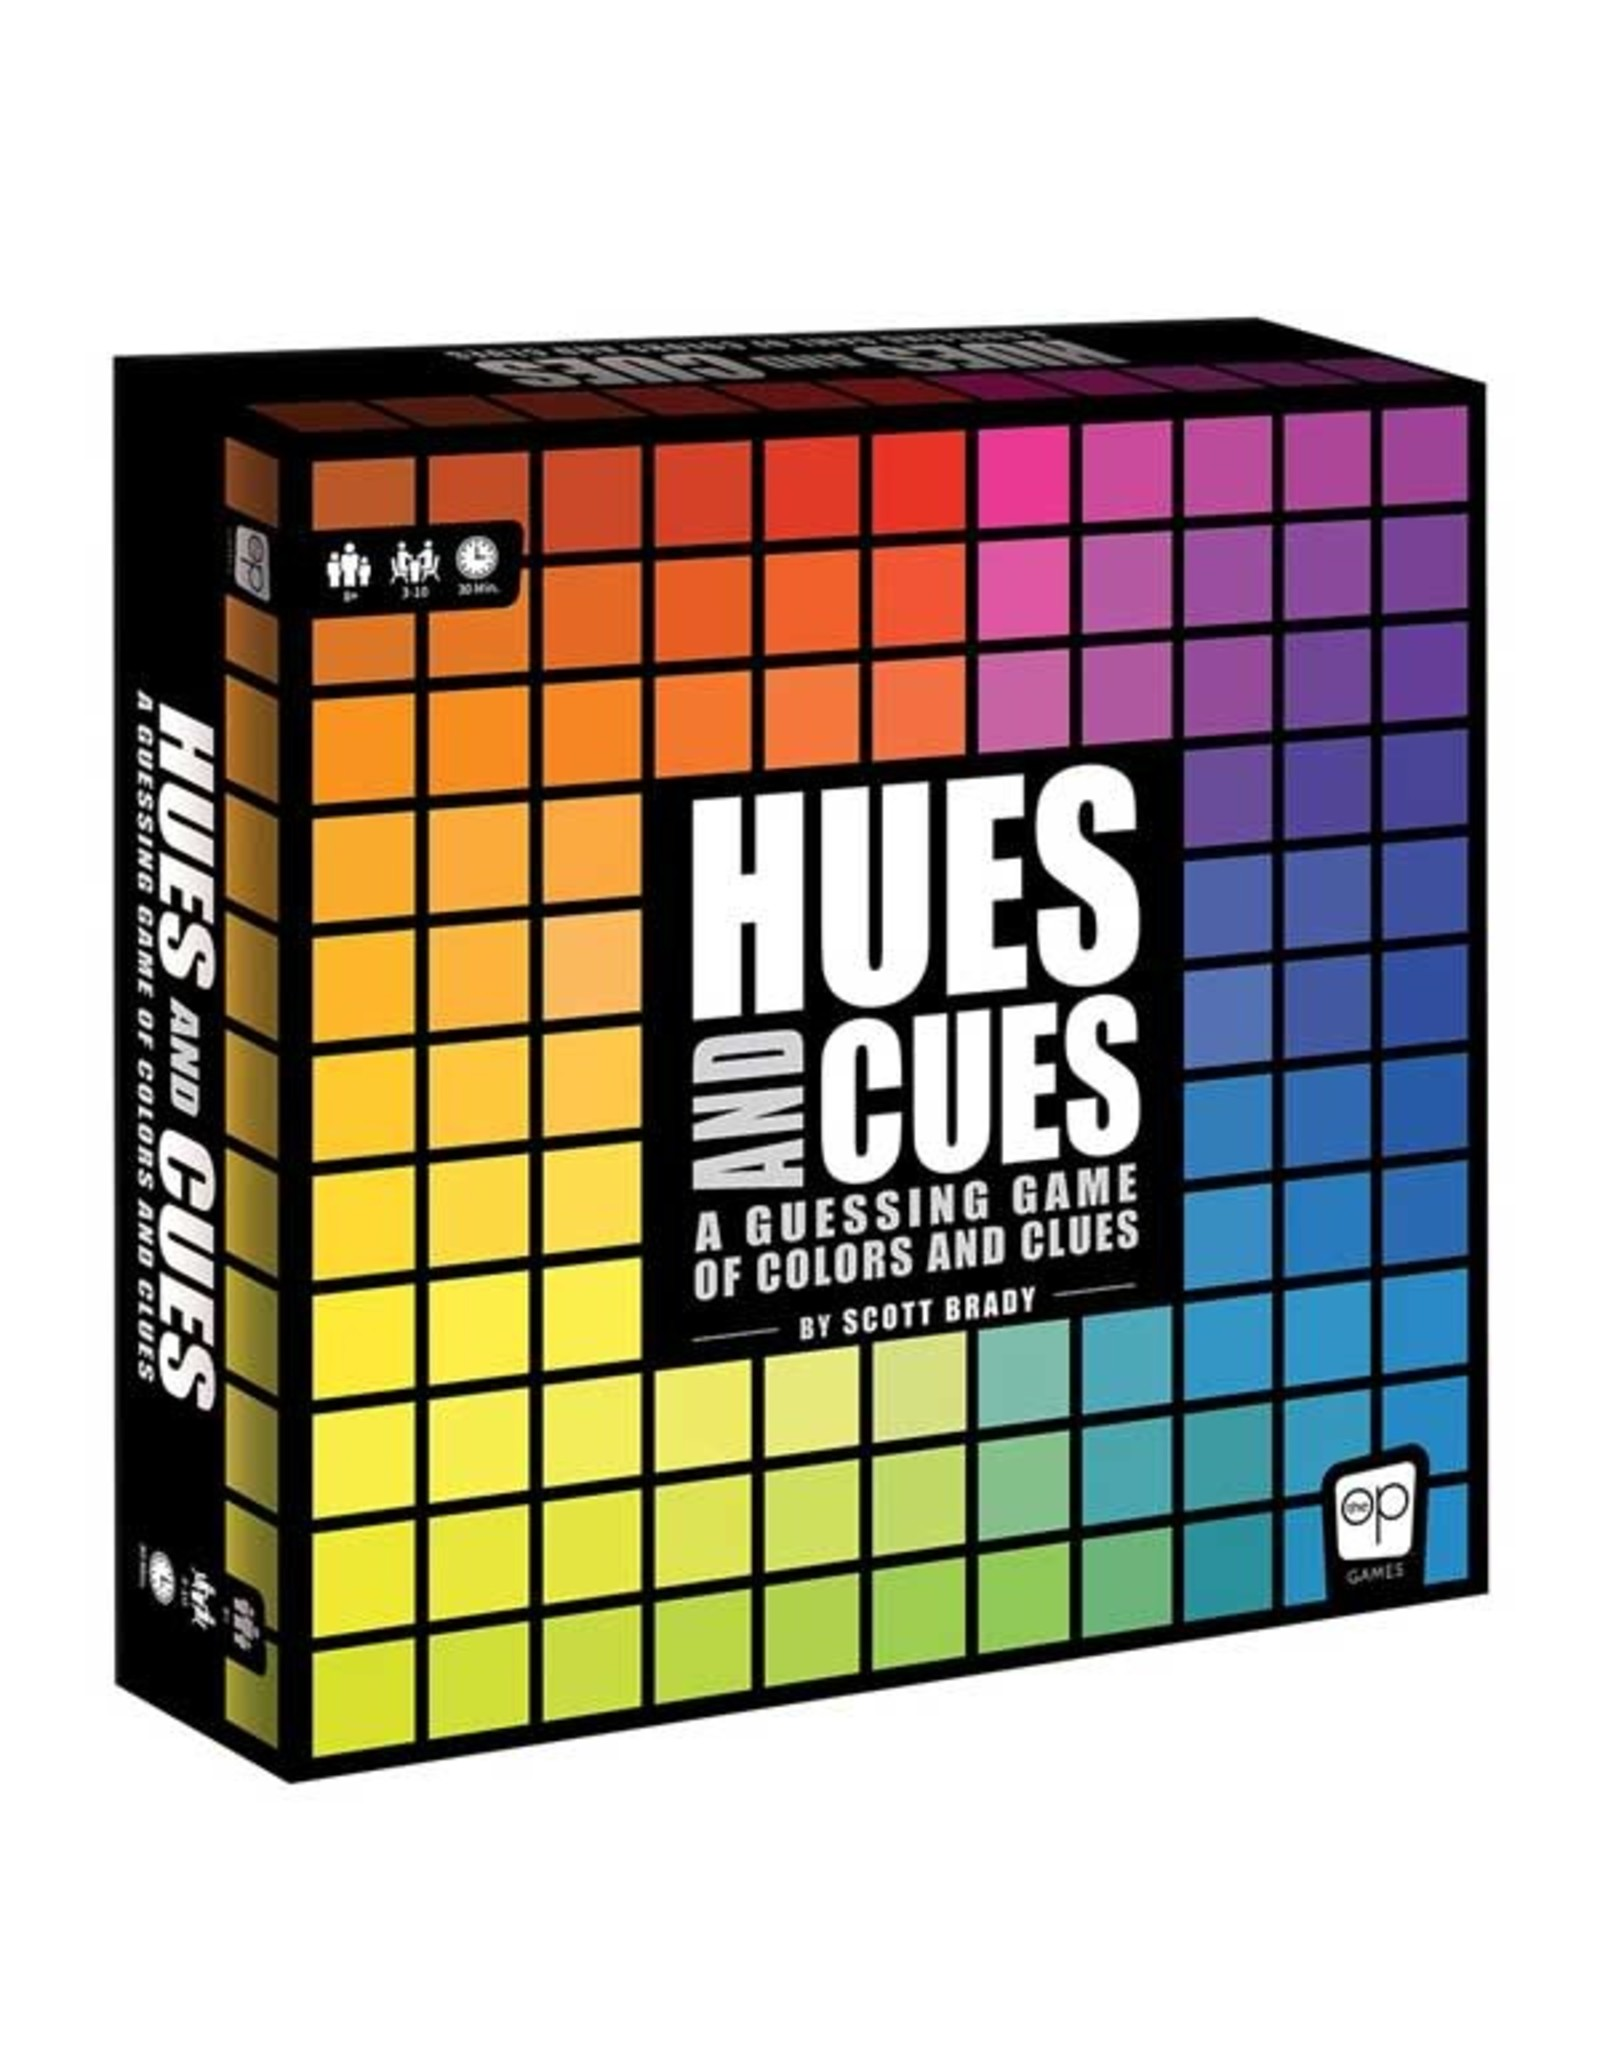 Usaopoly Hues & Cues